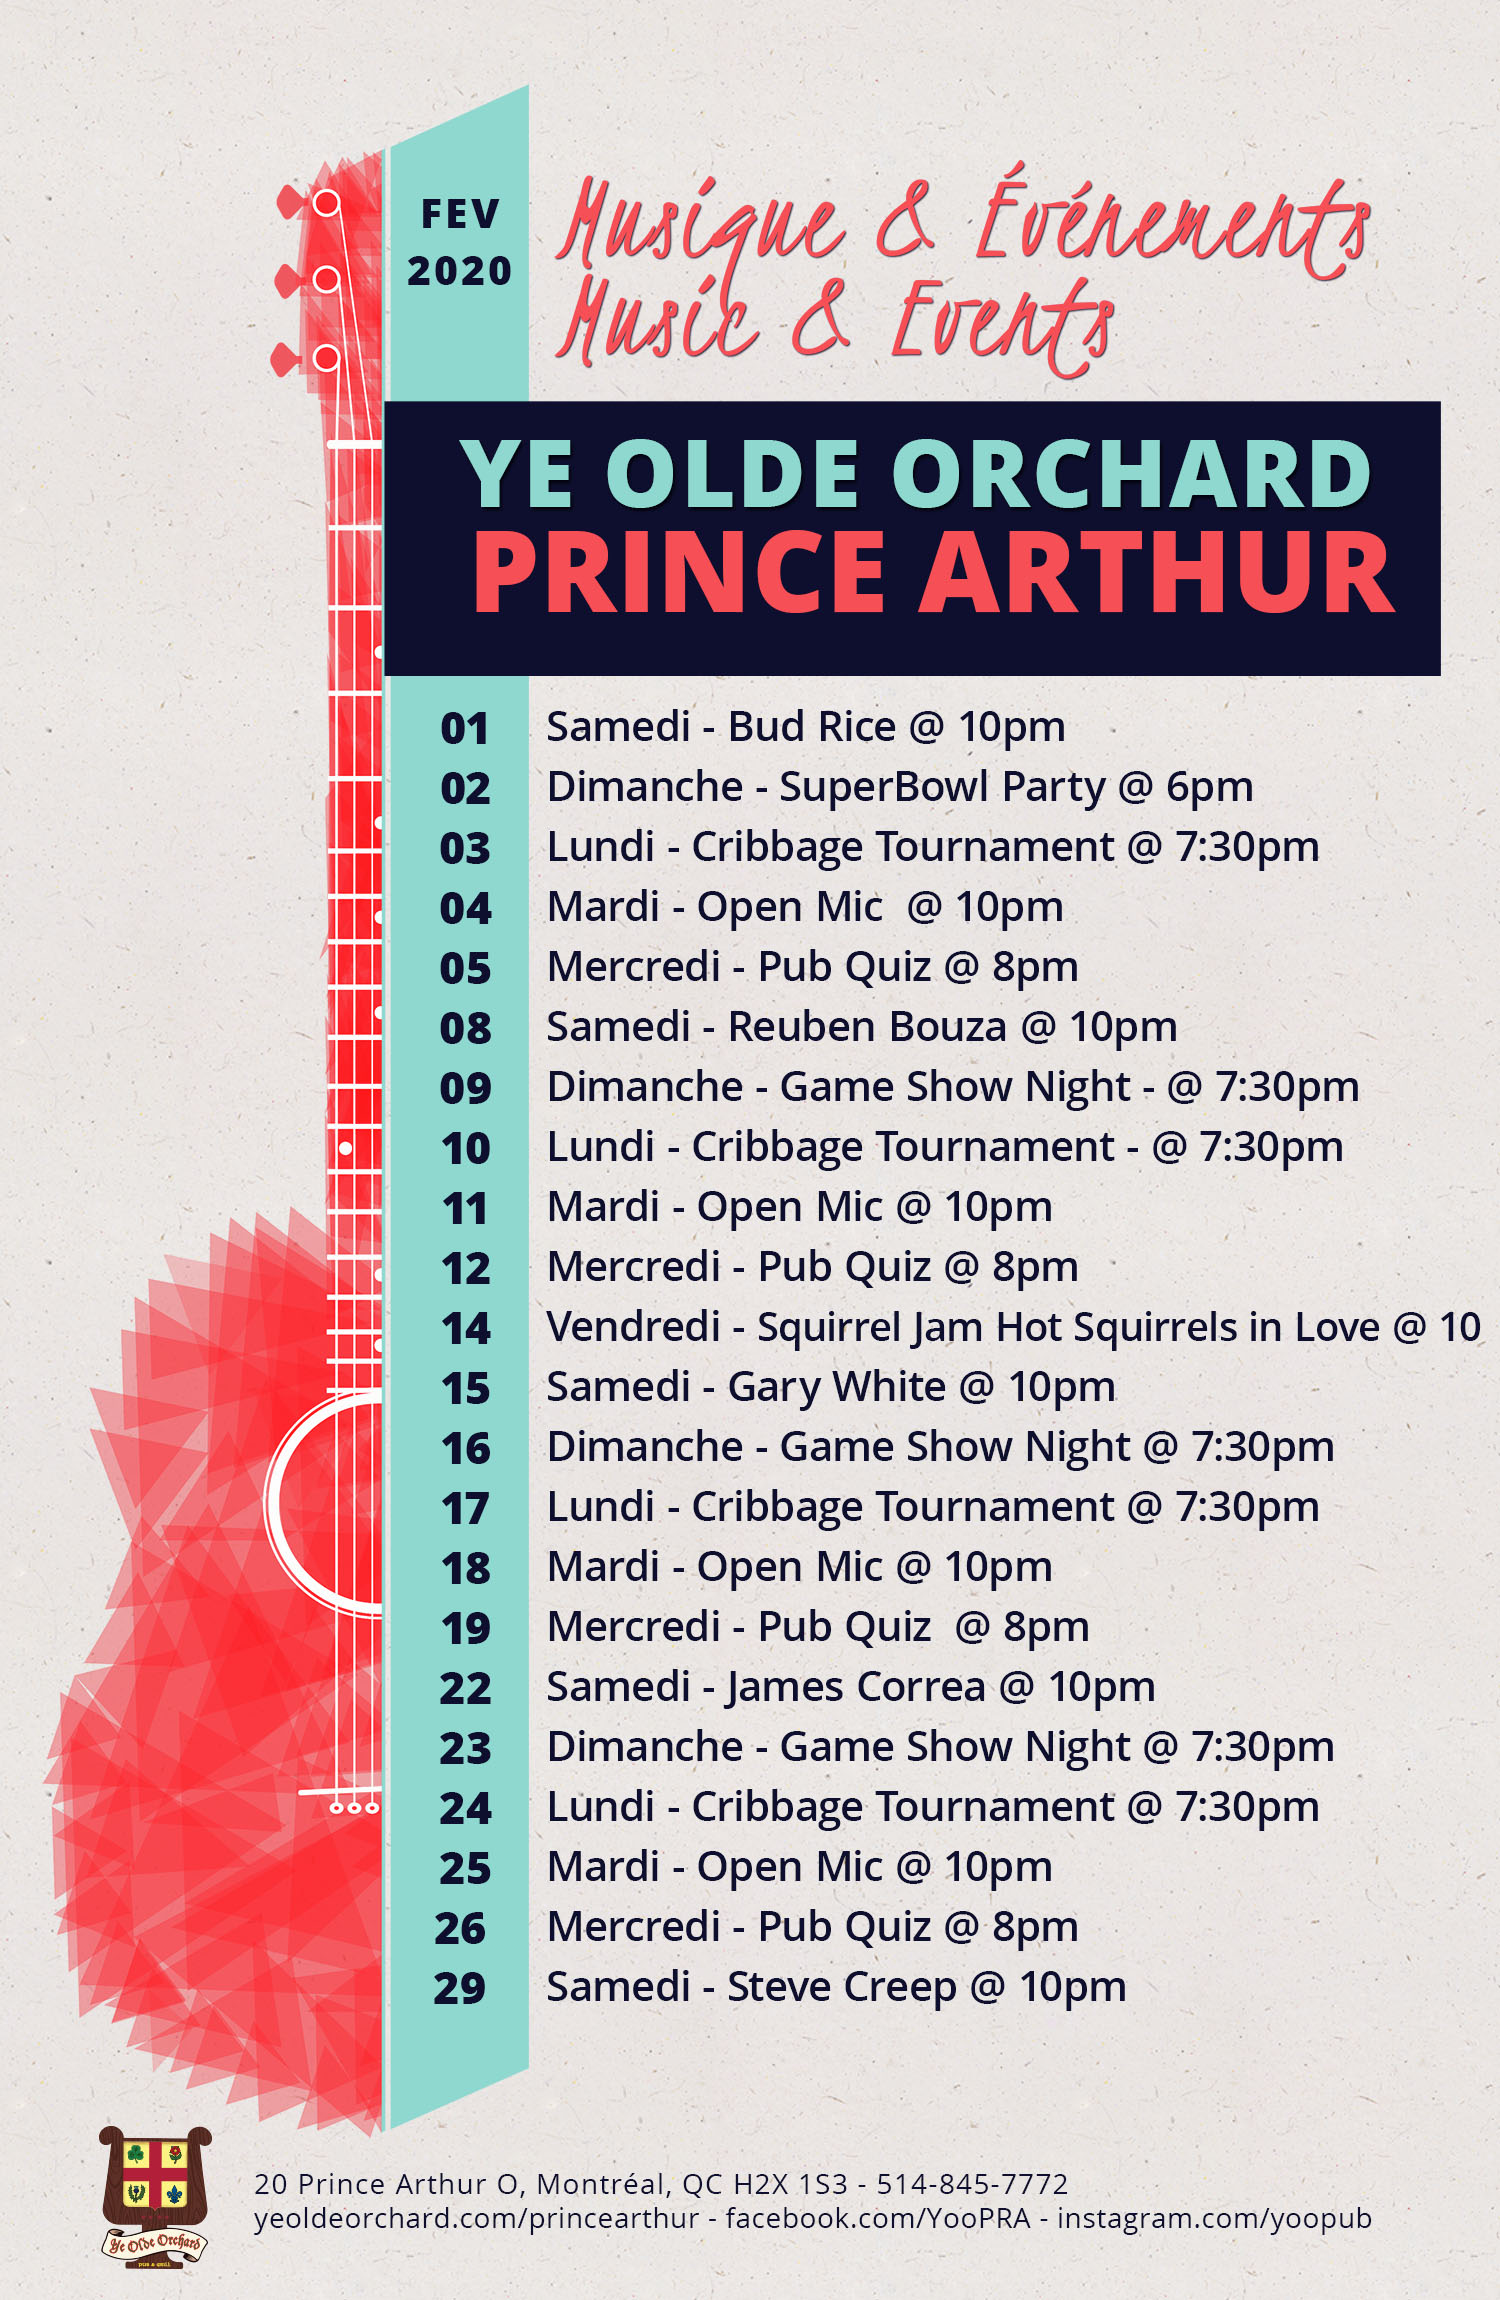 ye-olde-orchard-pub-music-and-events-calendar-prince-arthur-WEB-FEB